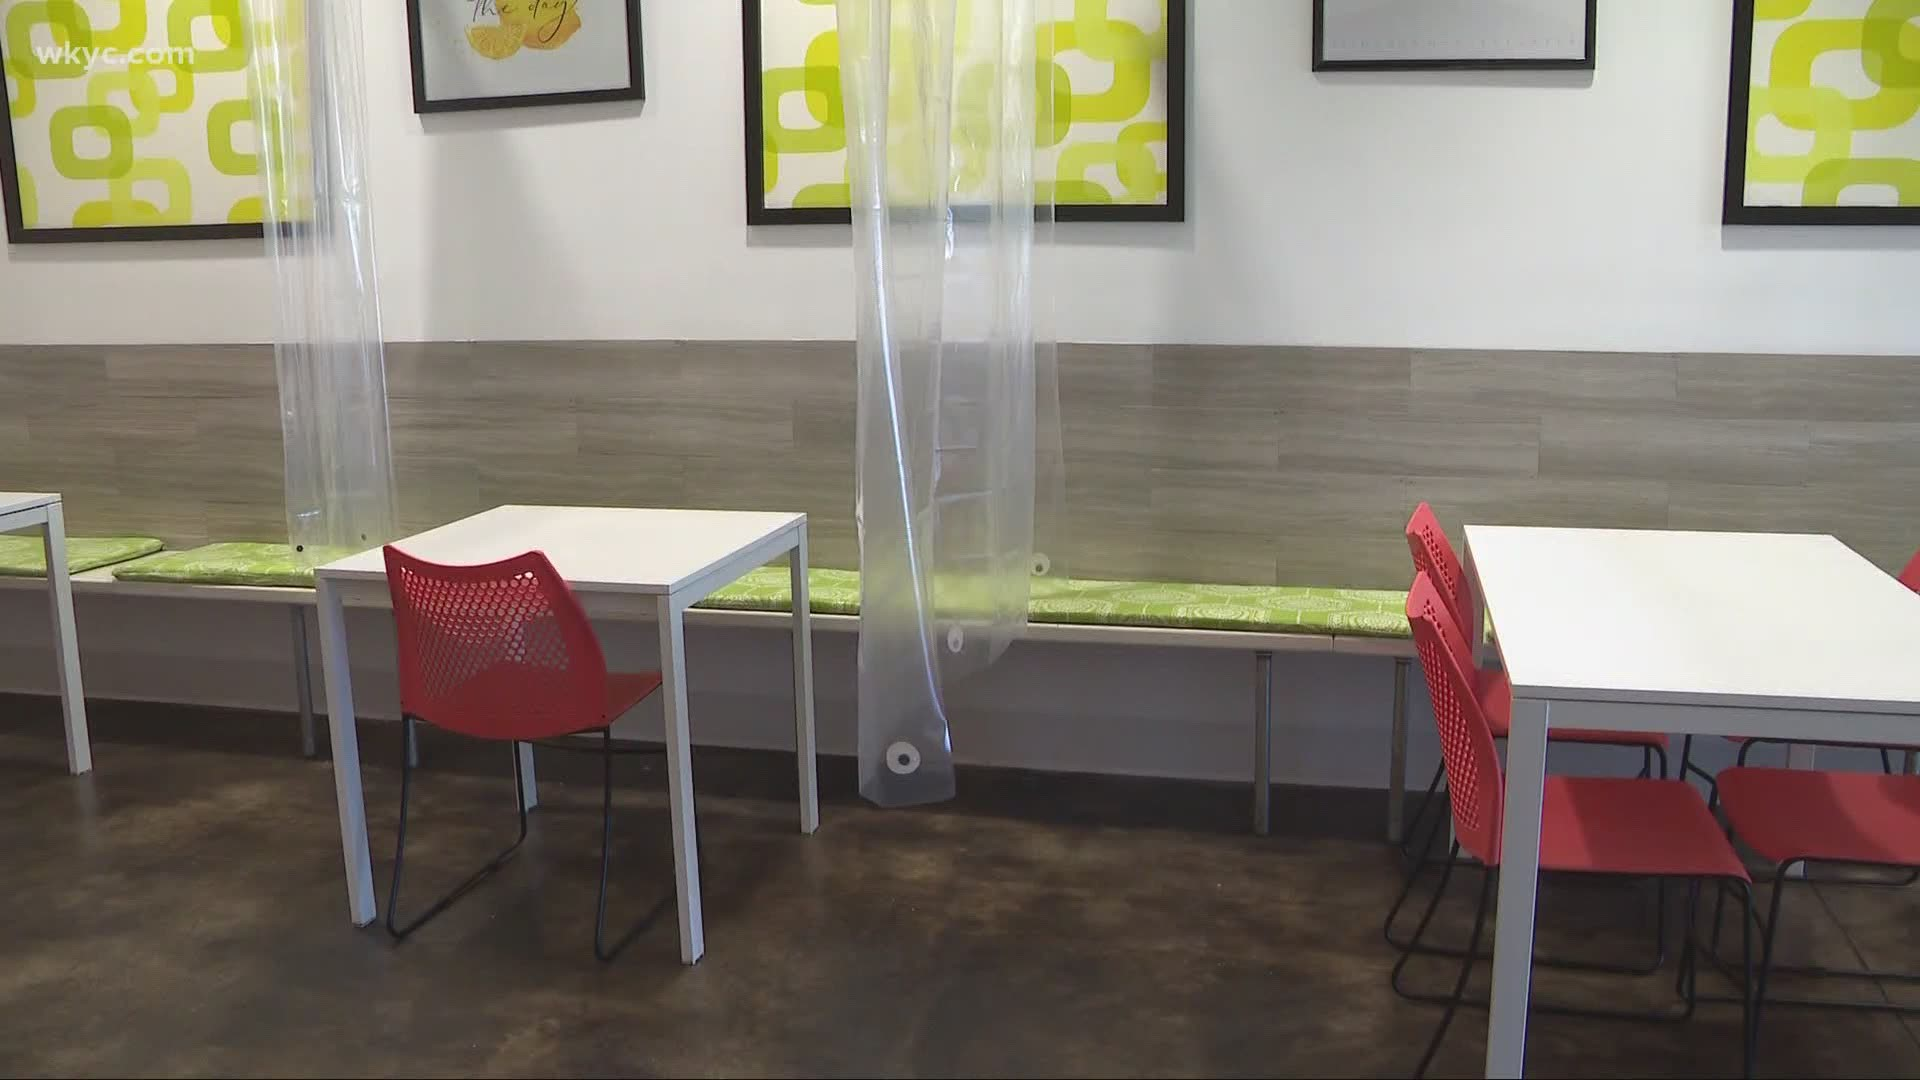 north canton restaurant uses shower curtains to separate tables for reopening amid coronavirus